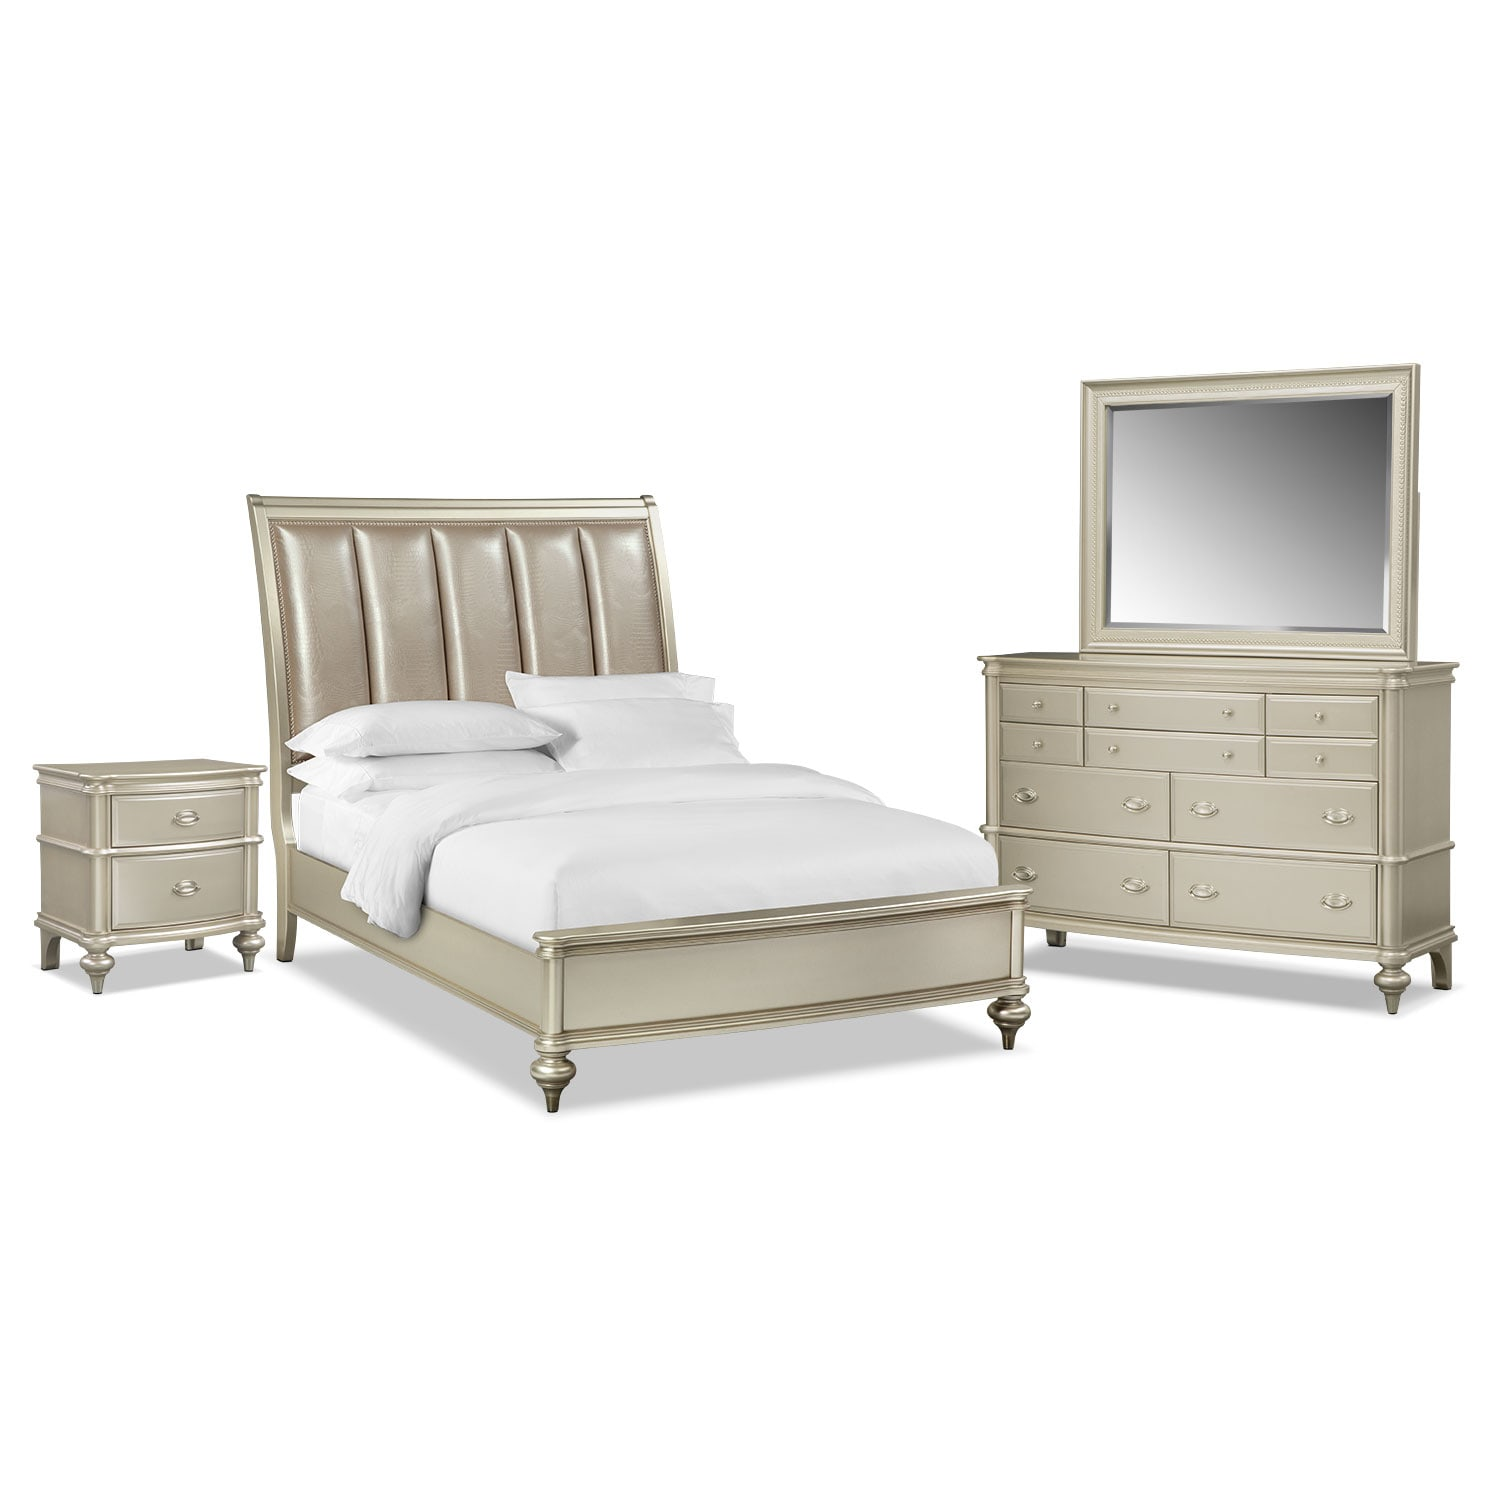 Esquire 6-Piece Queen Bedroom Set - Platinum